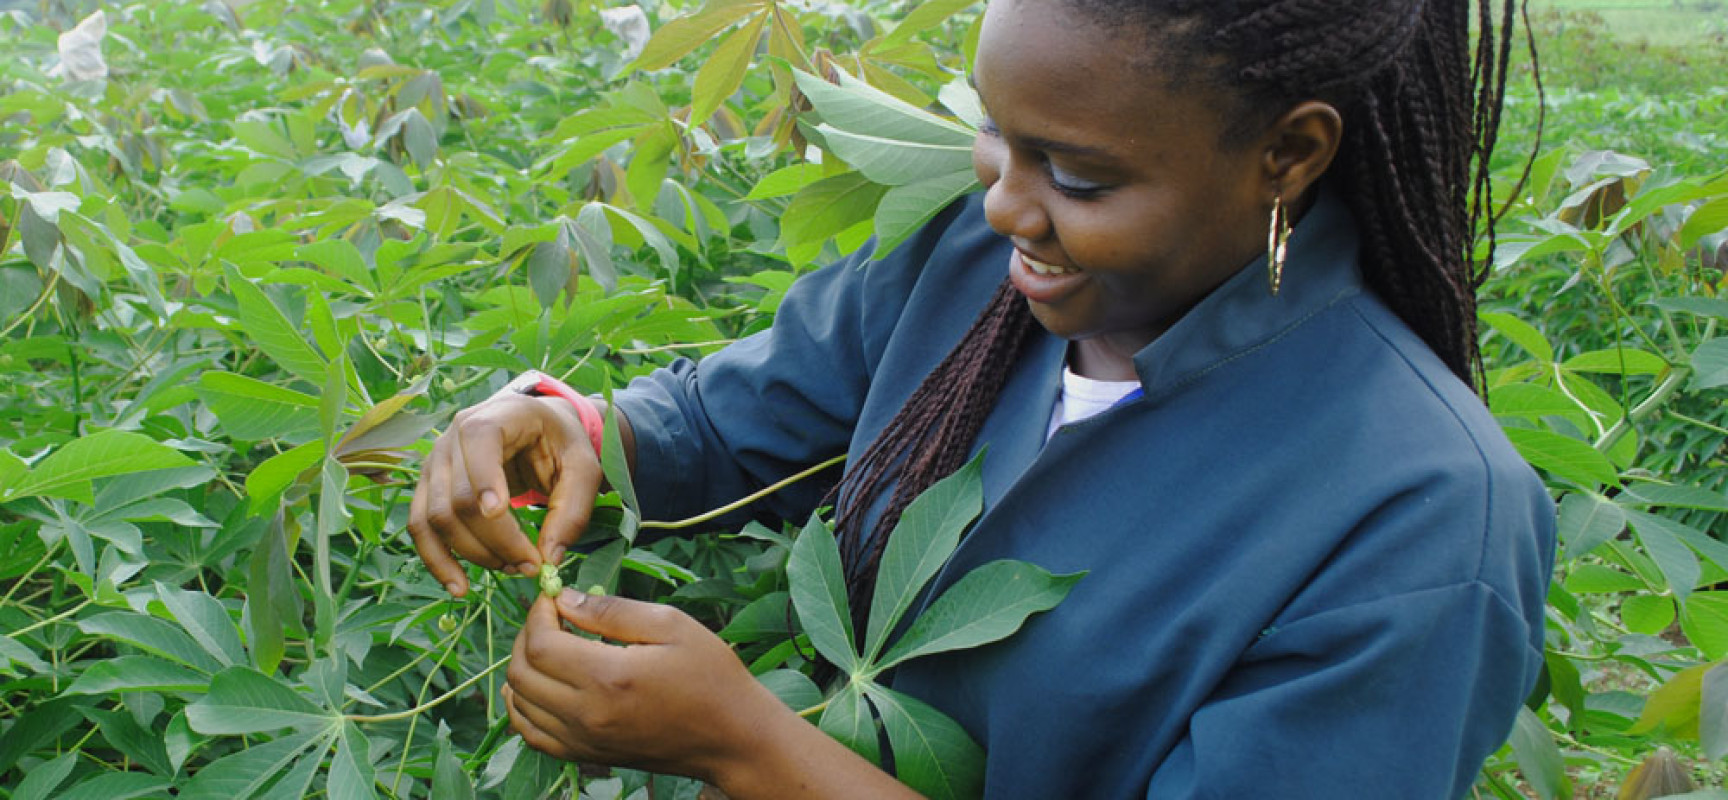 Youth-in-agriculture